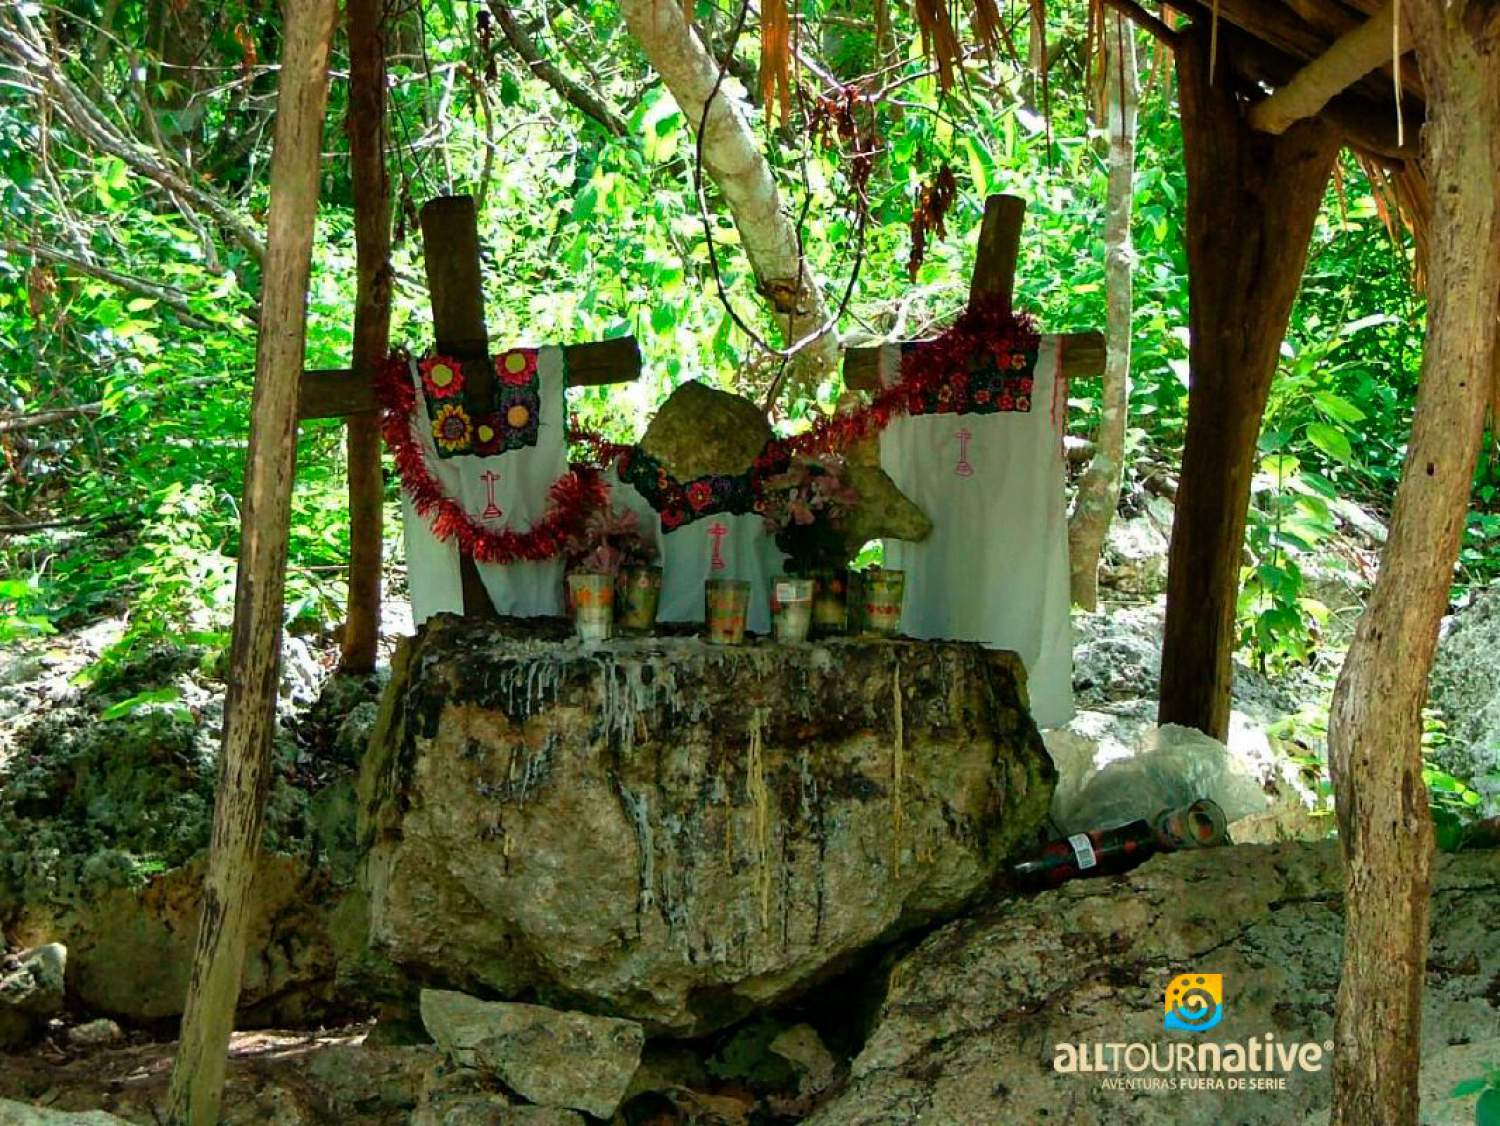 Altournative tours archeological site to visit, Mexico